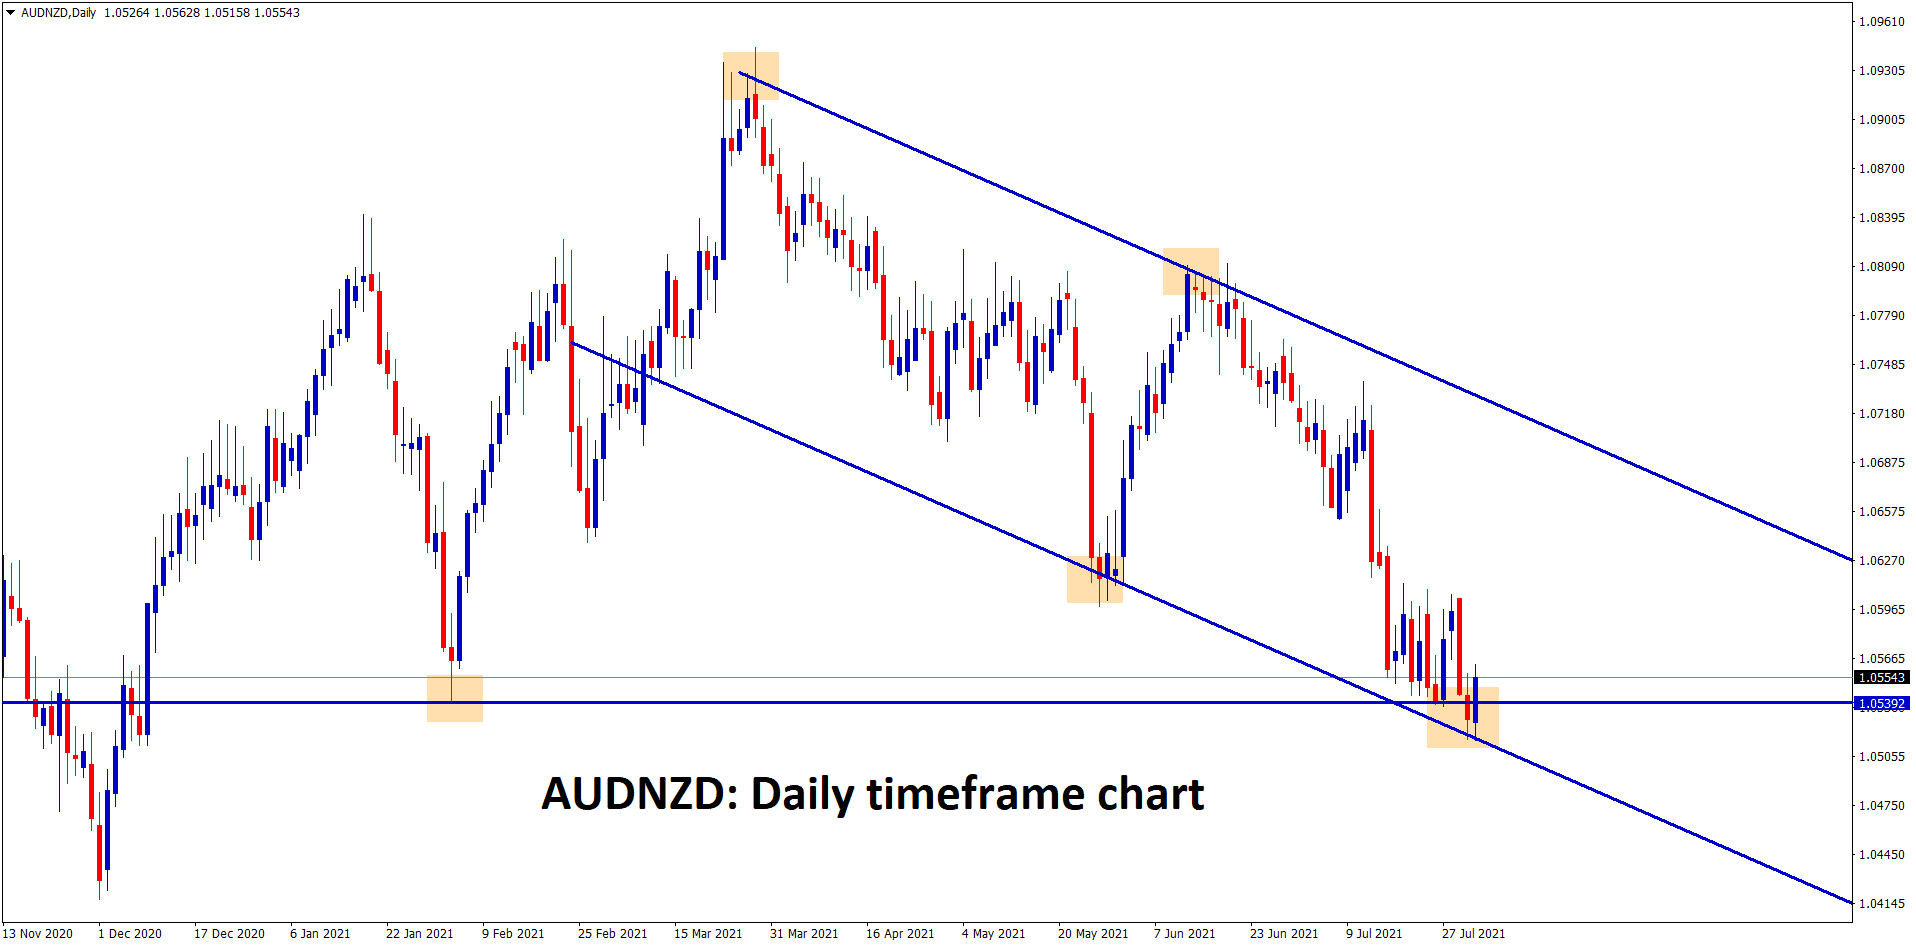 AUDNZD is standing at the support zone and the lower low level of the descending channel